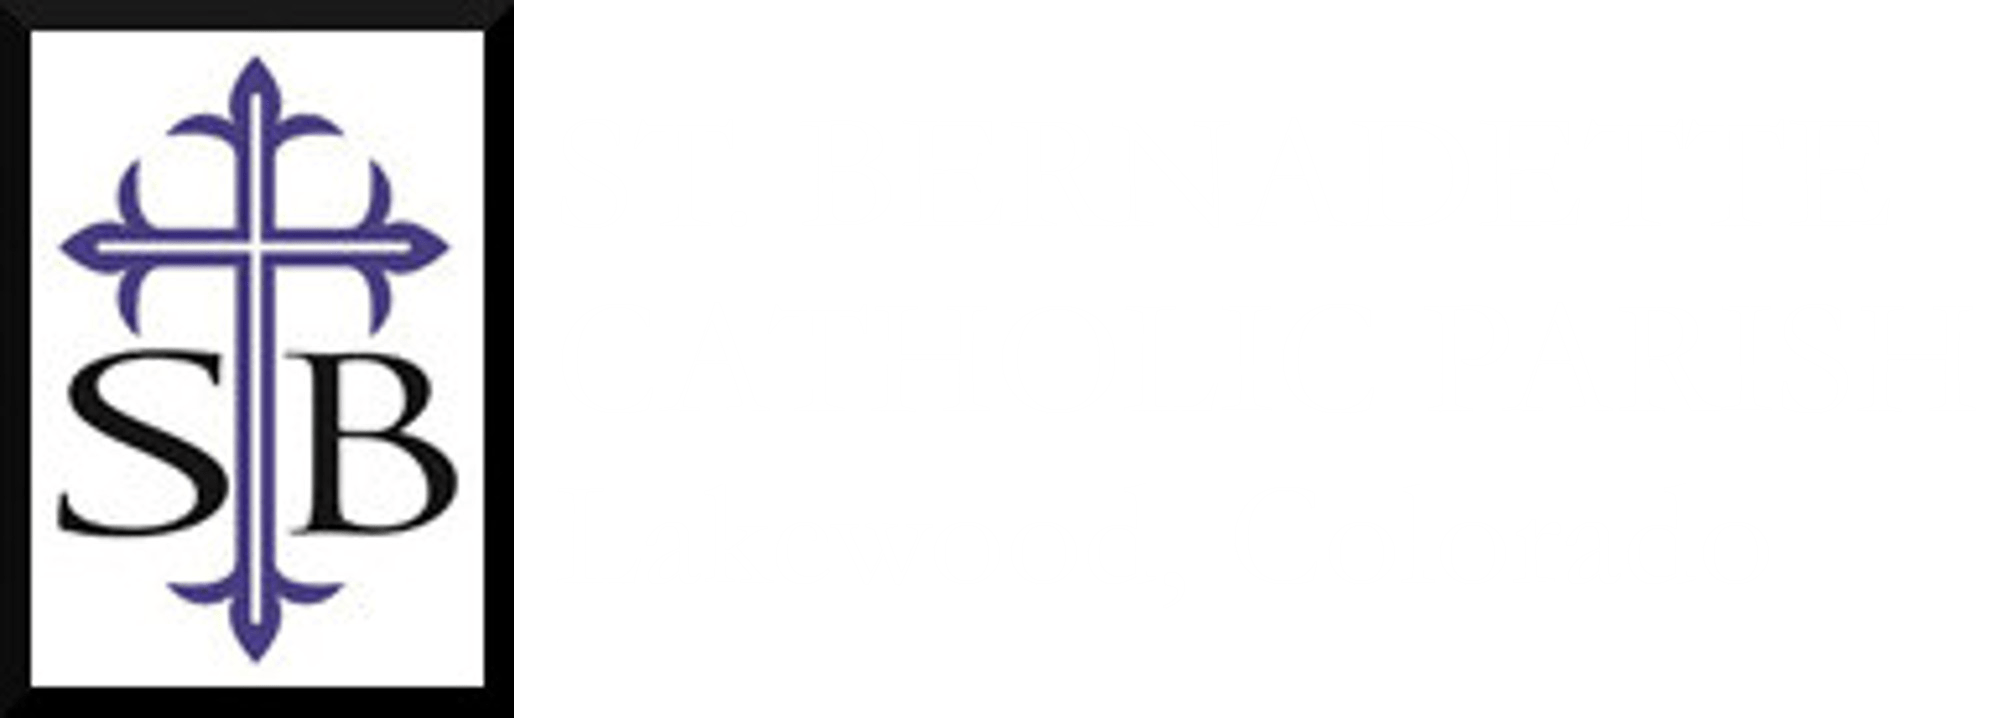 St. Bernadette Catholic Parish Lakewood Colorado